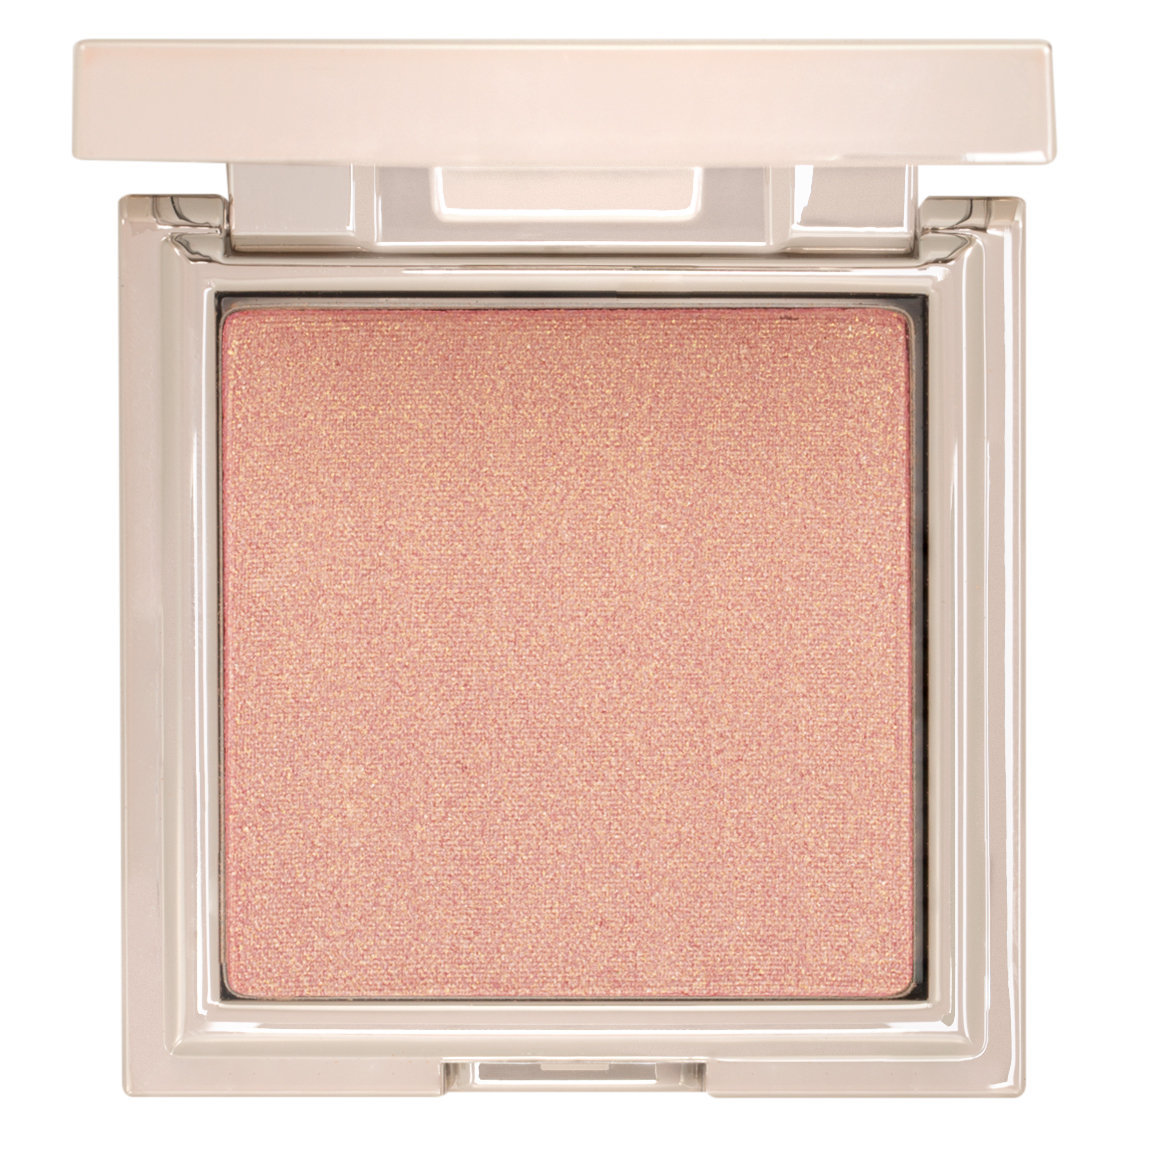 Jouer Cosmetics Powder Highlighter Rose Gold product smear.